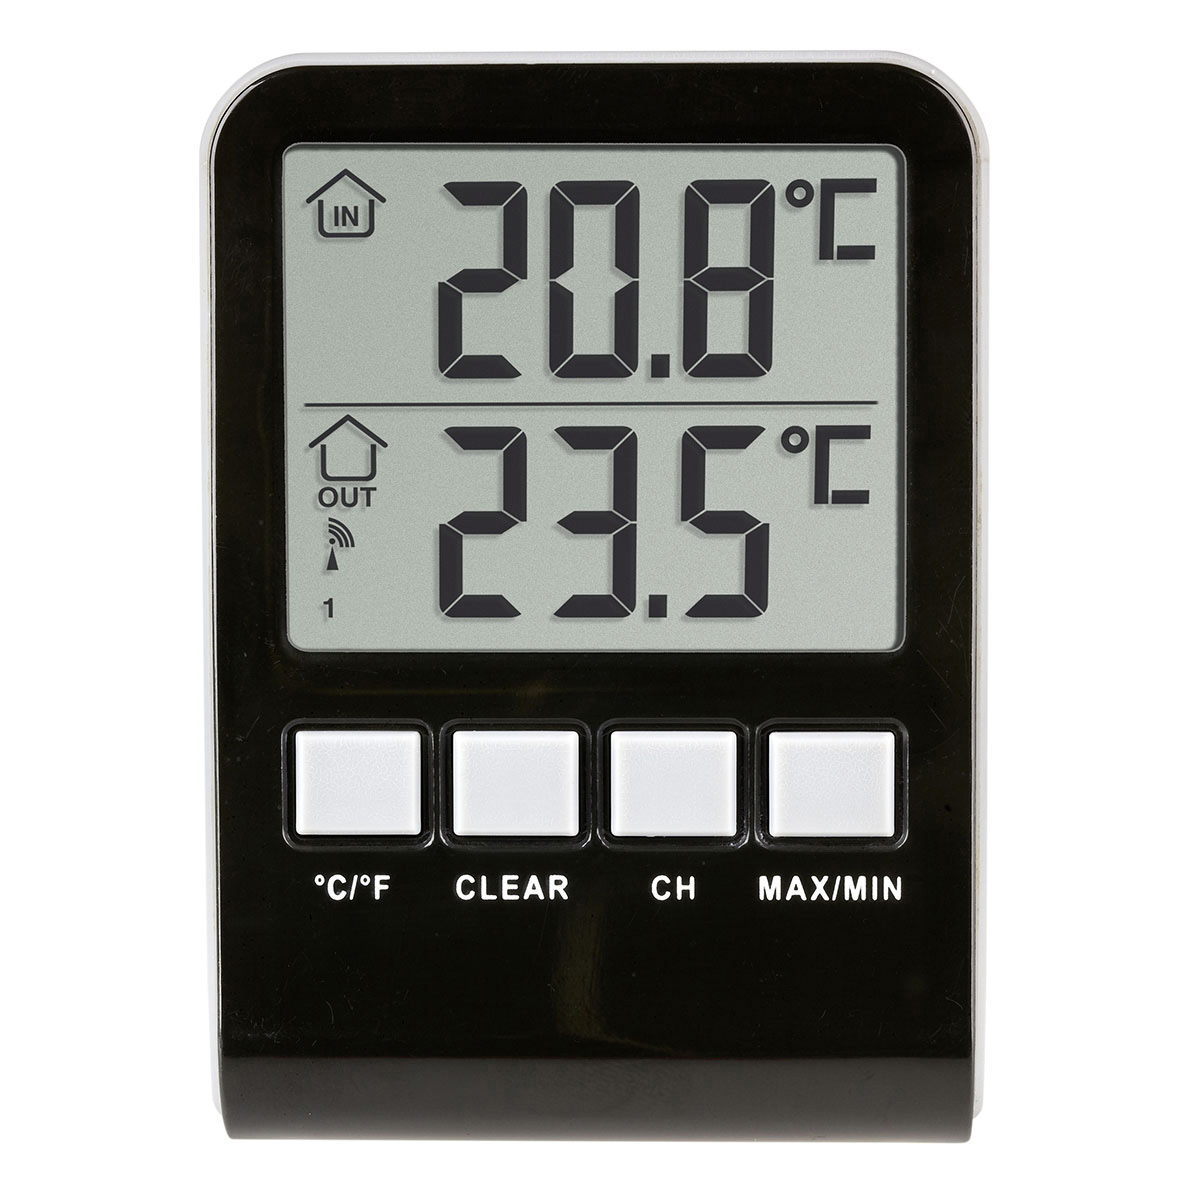 30-3067-10-funk-poolthermometer-plama-ansicht-1200x1200px.jpg